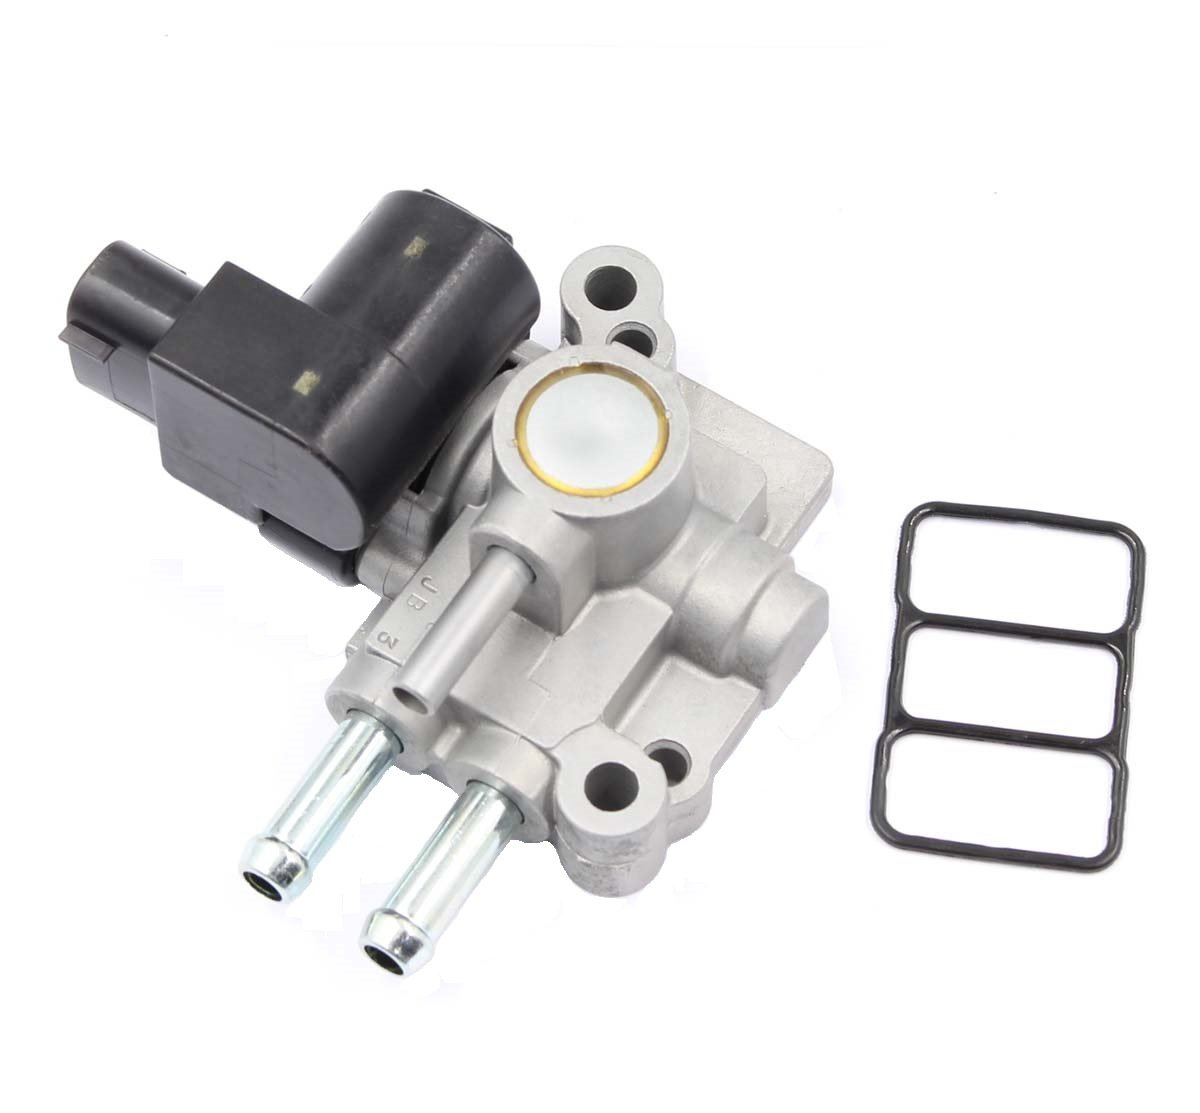 Idle Air Control Valve For 1998-2002 Honda Accord Sedan Coupe 36460PAAL21